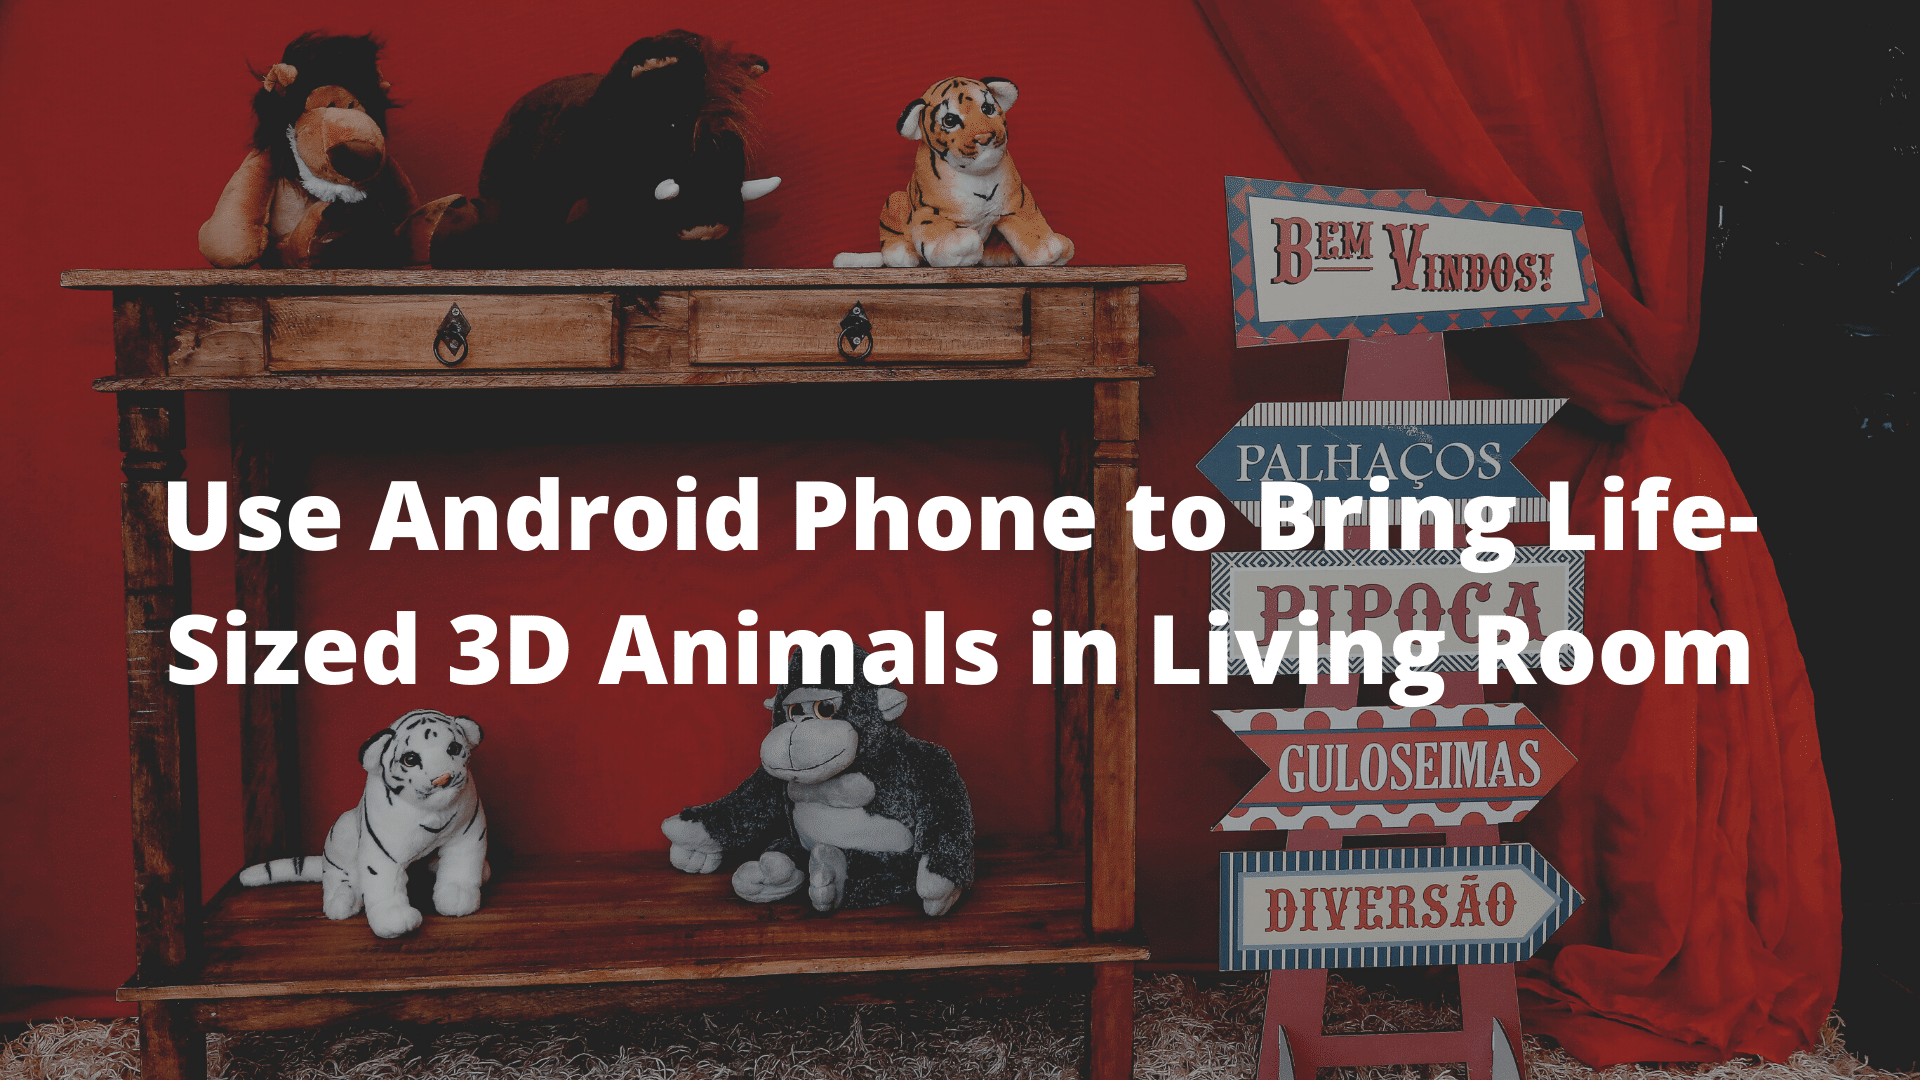 Use Android Phone to Bring Life-Sized 3D Animals in Your Living Room